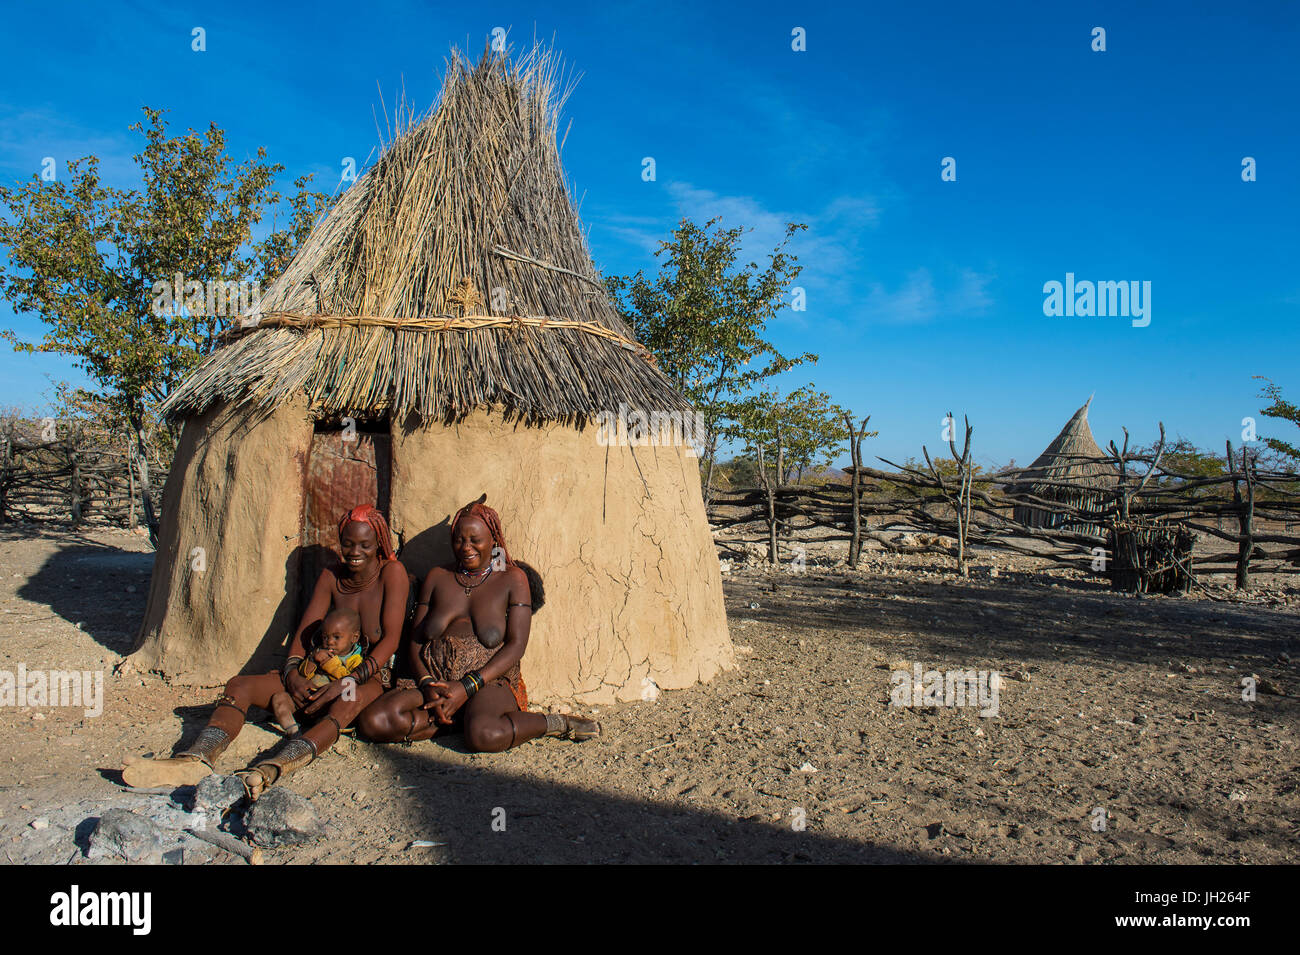 Himba women in front of their hut, Kaokoland, Namibia, Africa - Stock Image